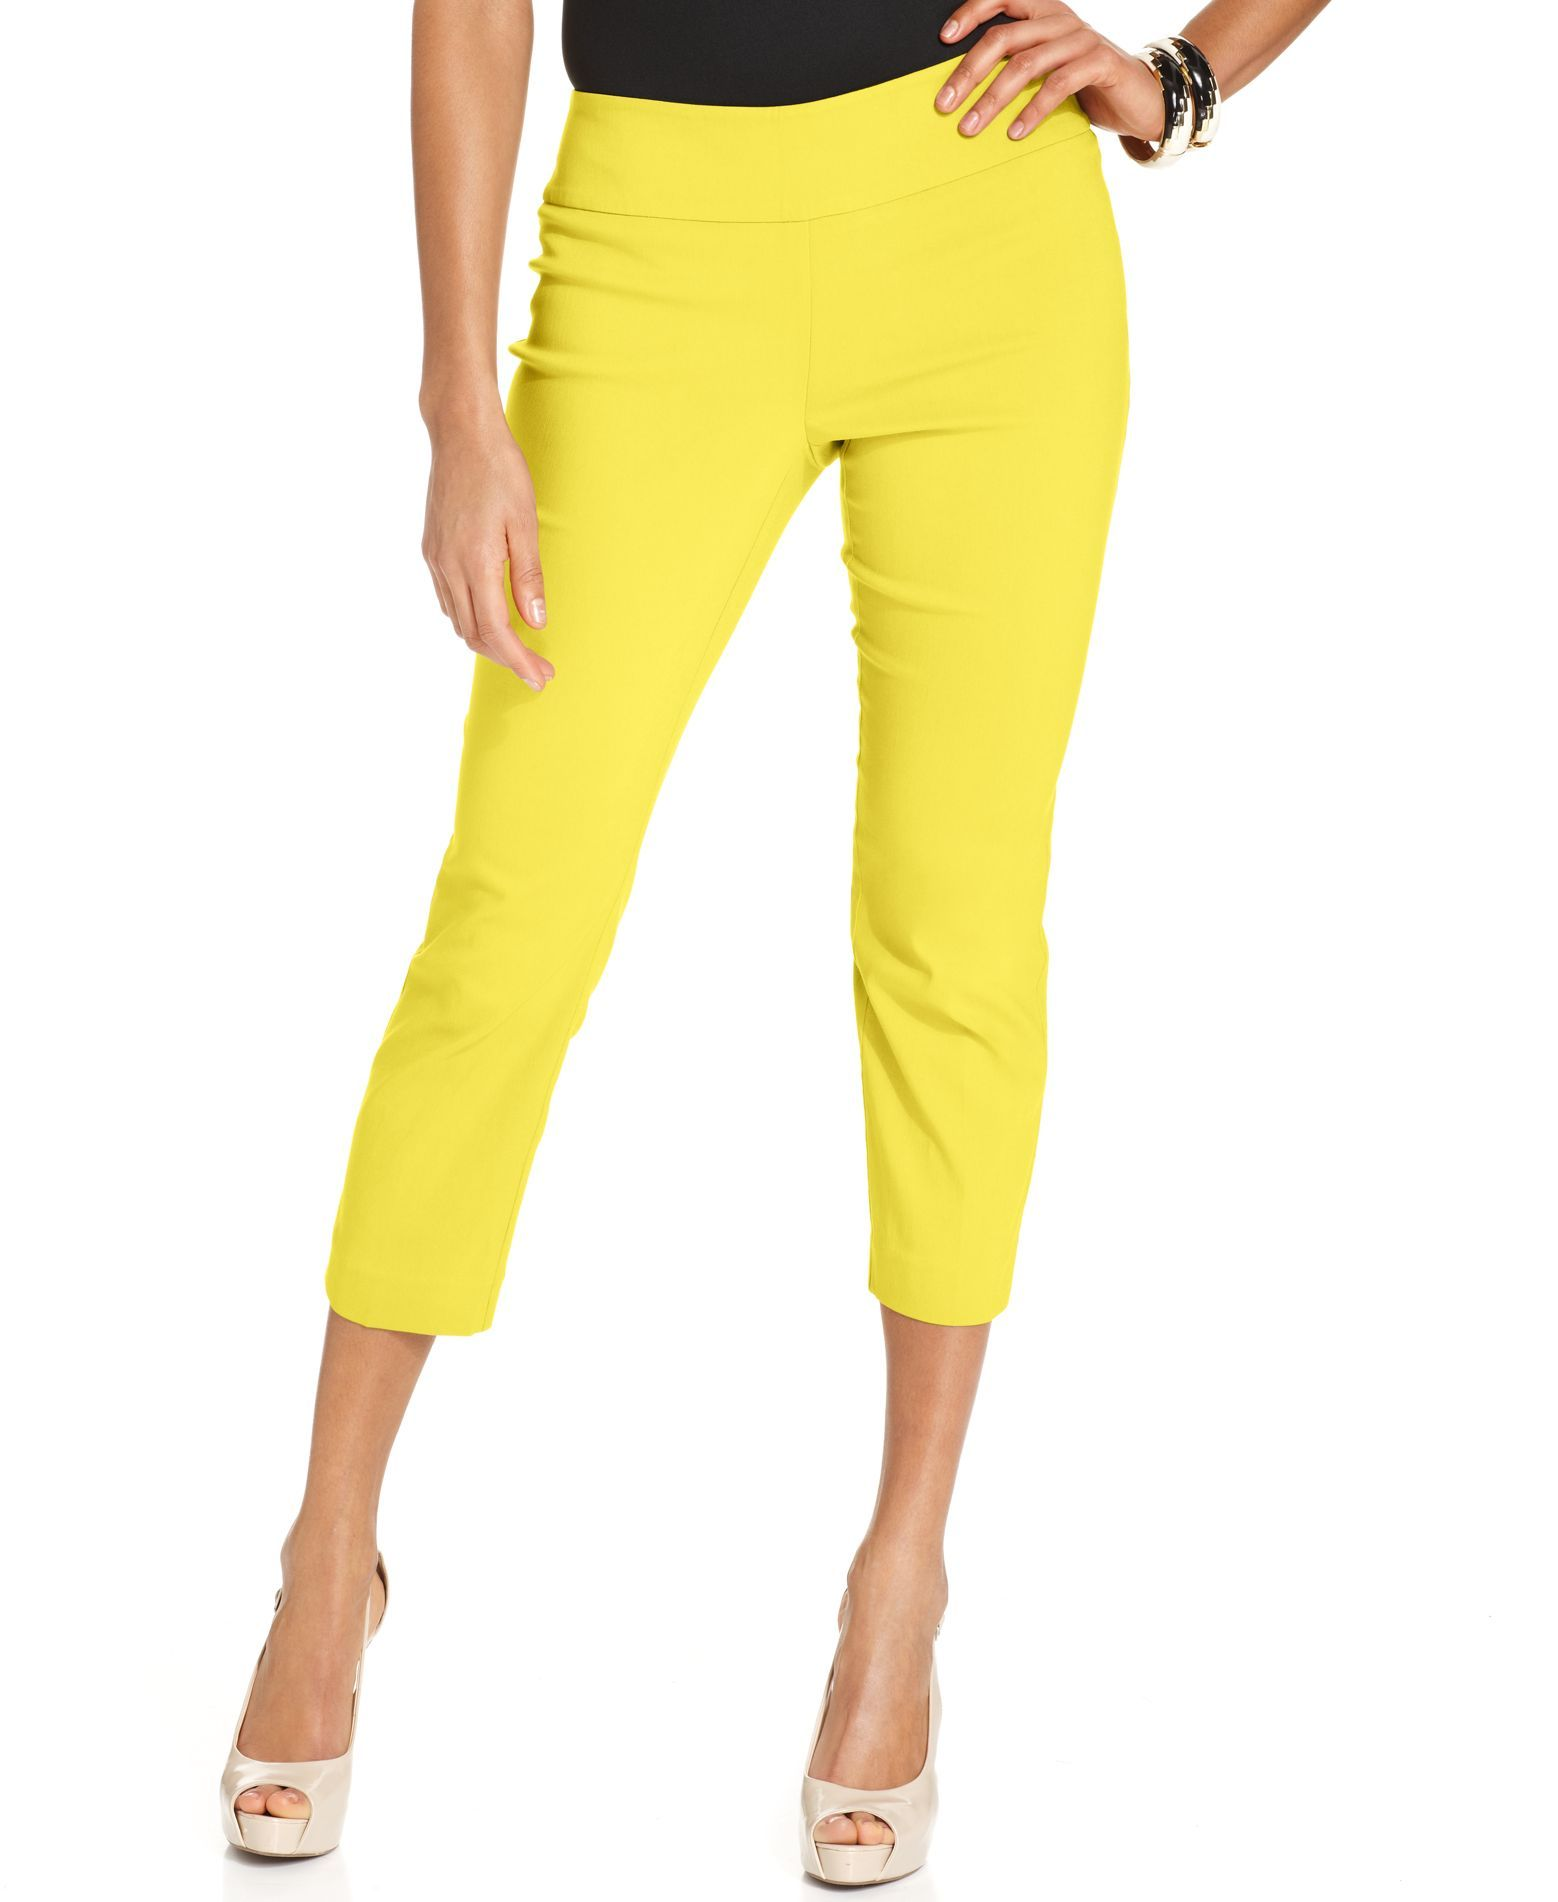 Alfani Skinny Pull-On Capri Pants, Only at Macy's